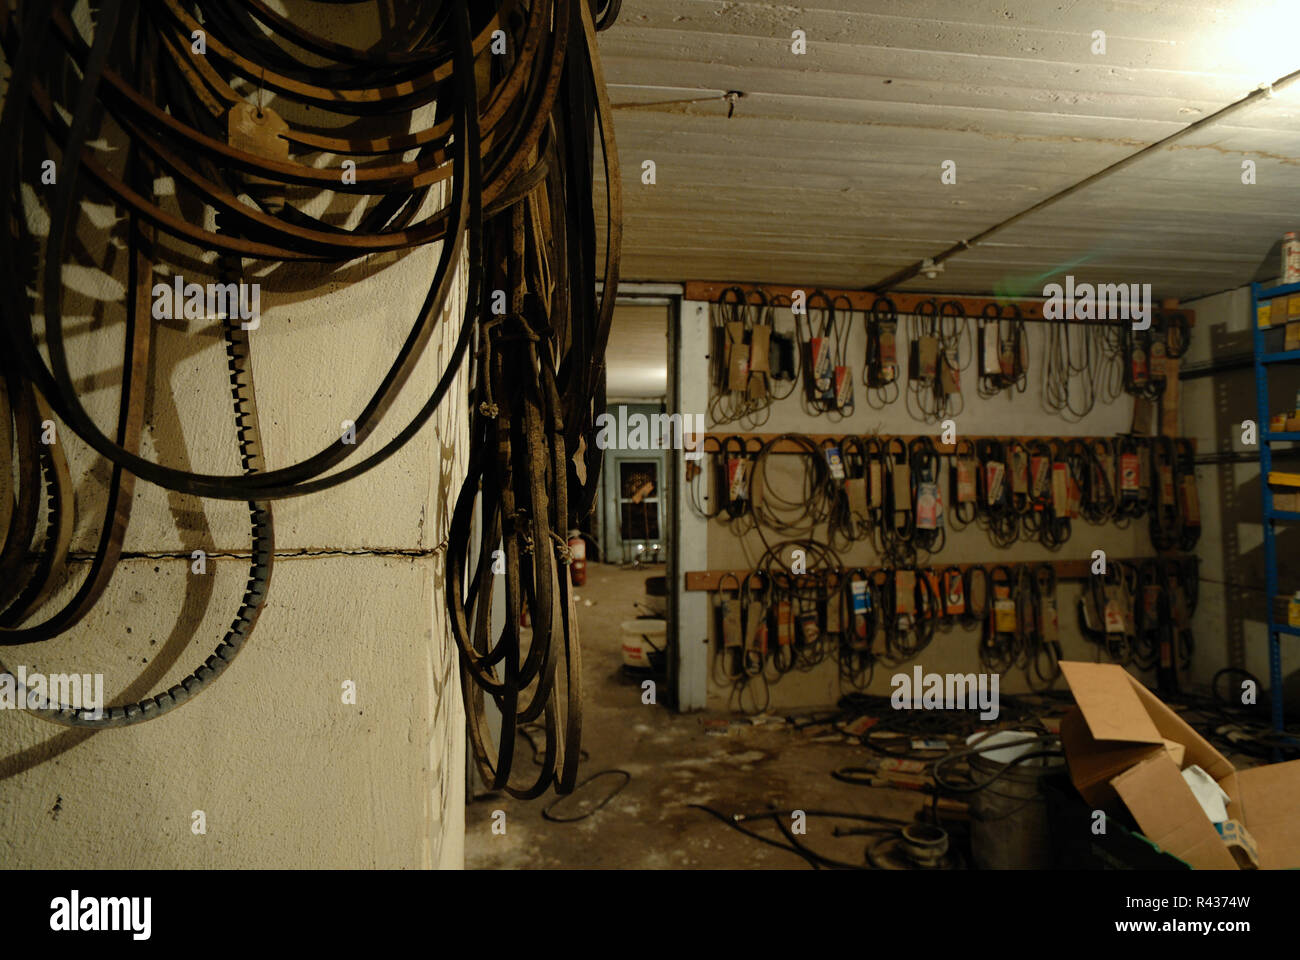 Many fan belts hang on the walls in a darkly lit warehouse basement Stock Photo